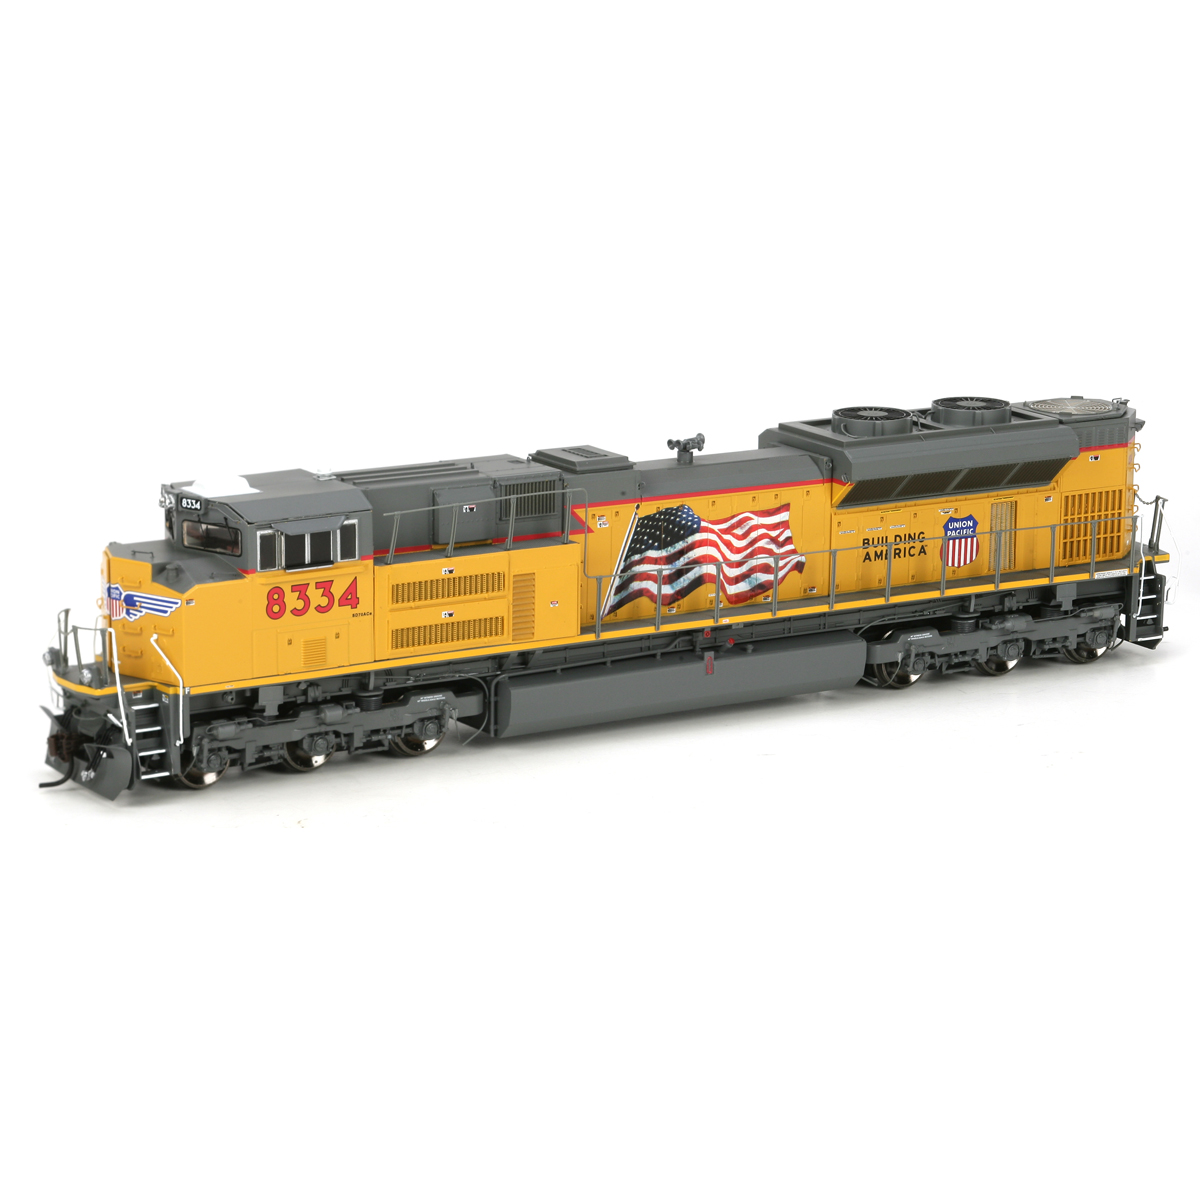 Ho Sd70ace W Dcc Sound Up Flag 8334 Athg68620 Athearn Trains